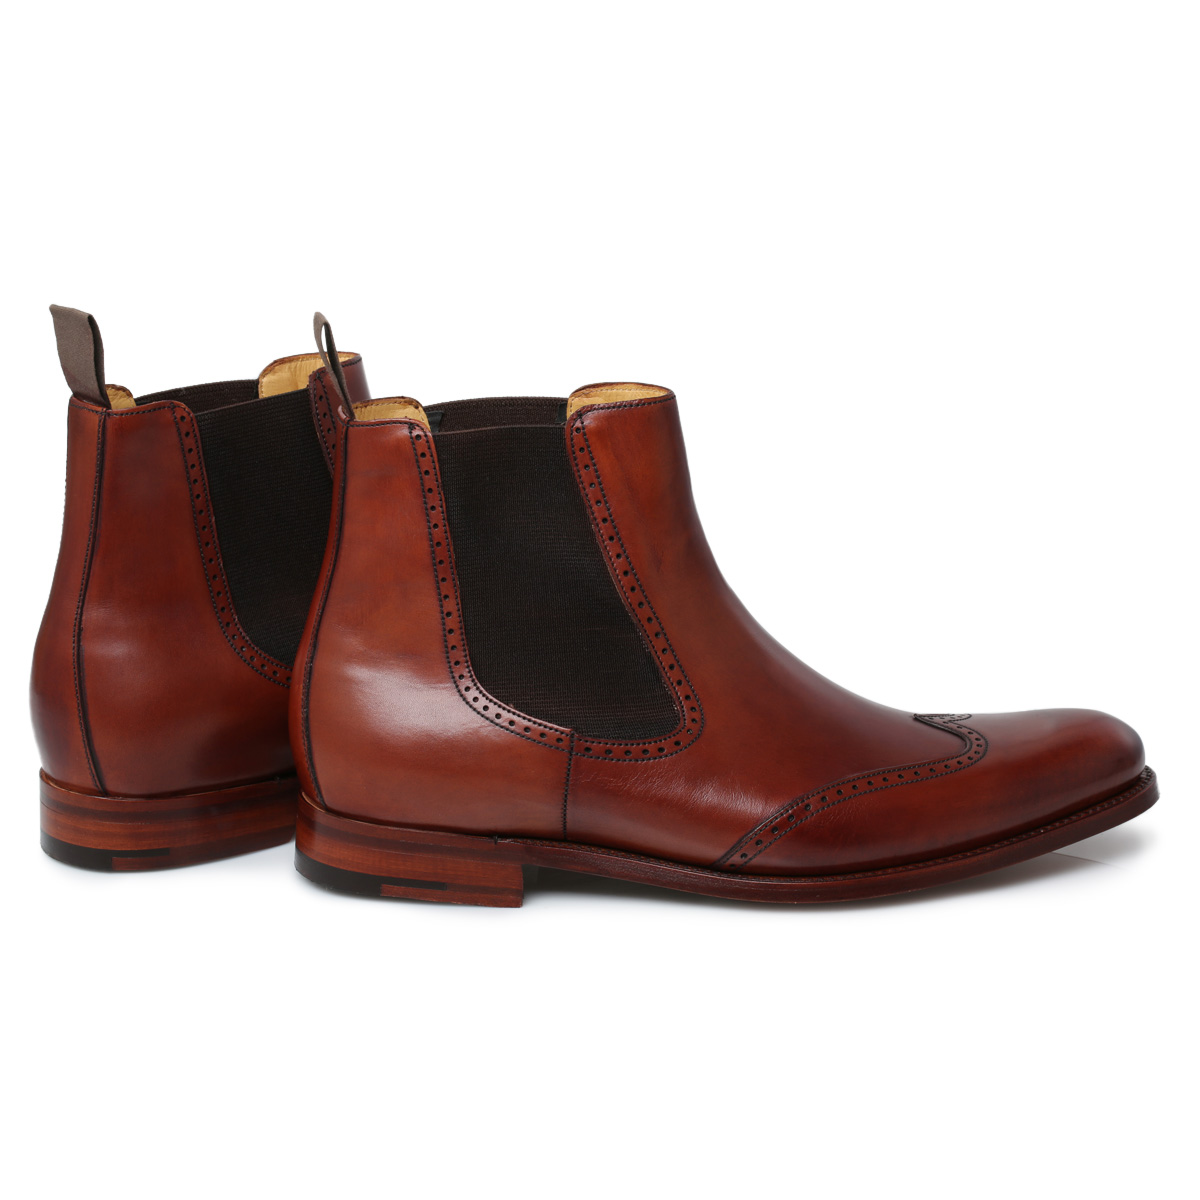 Mens Chelsea Boots. Need a style reboot? Upgrade your shoe collection with men's Chelsea boots. Sleek and stylish, this slip-on design is a welcome addition to any guy's wardrobe.